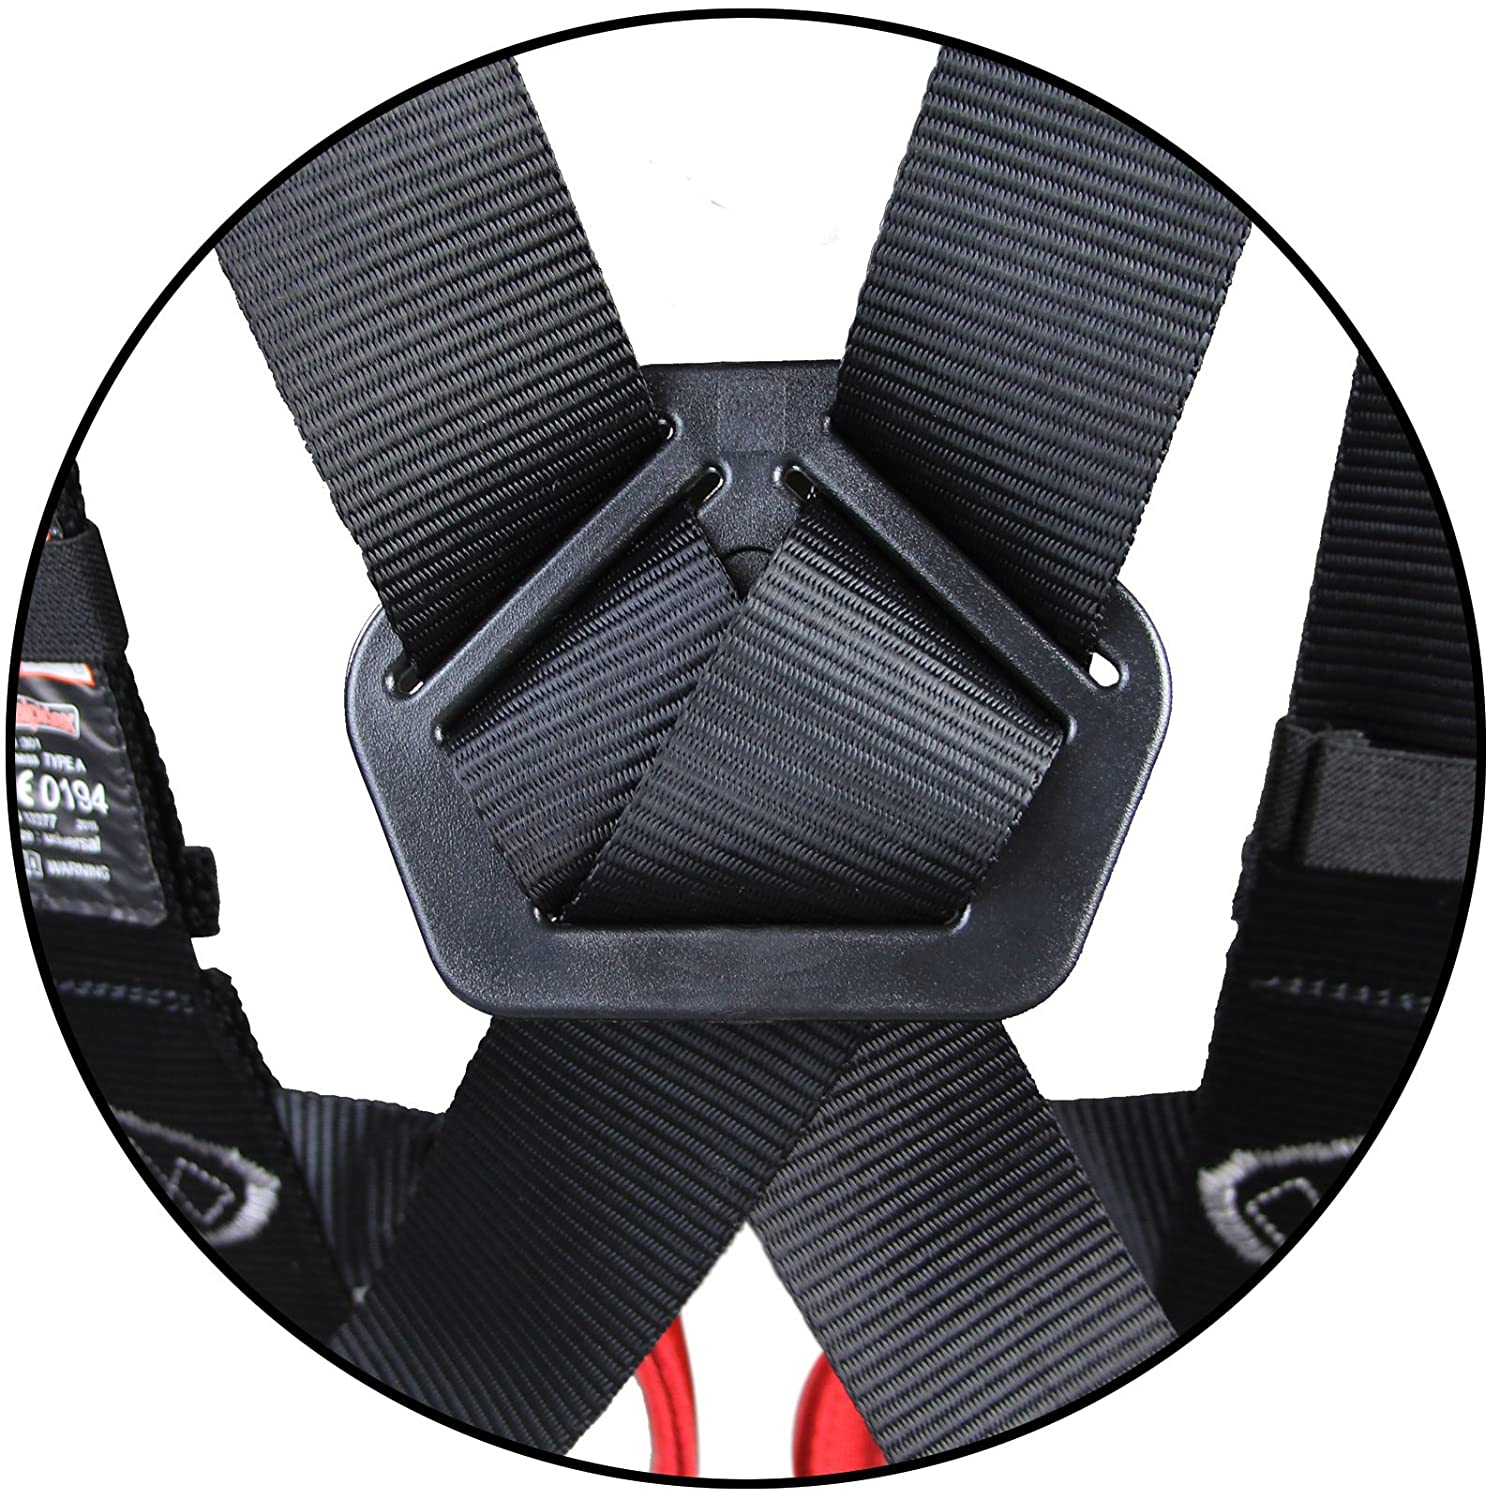 ALPIDEX Full body harness infinitely adjustable for adults up to 100 kg